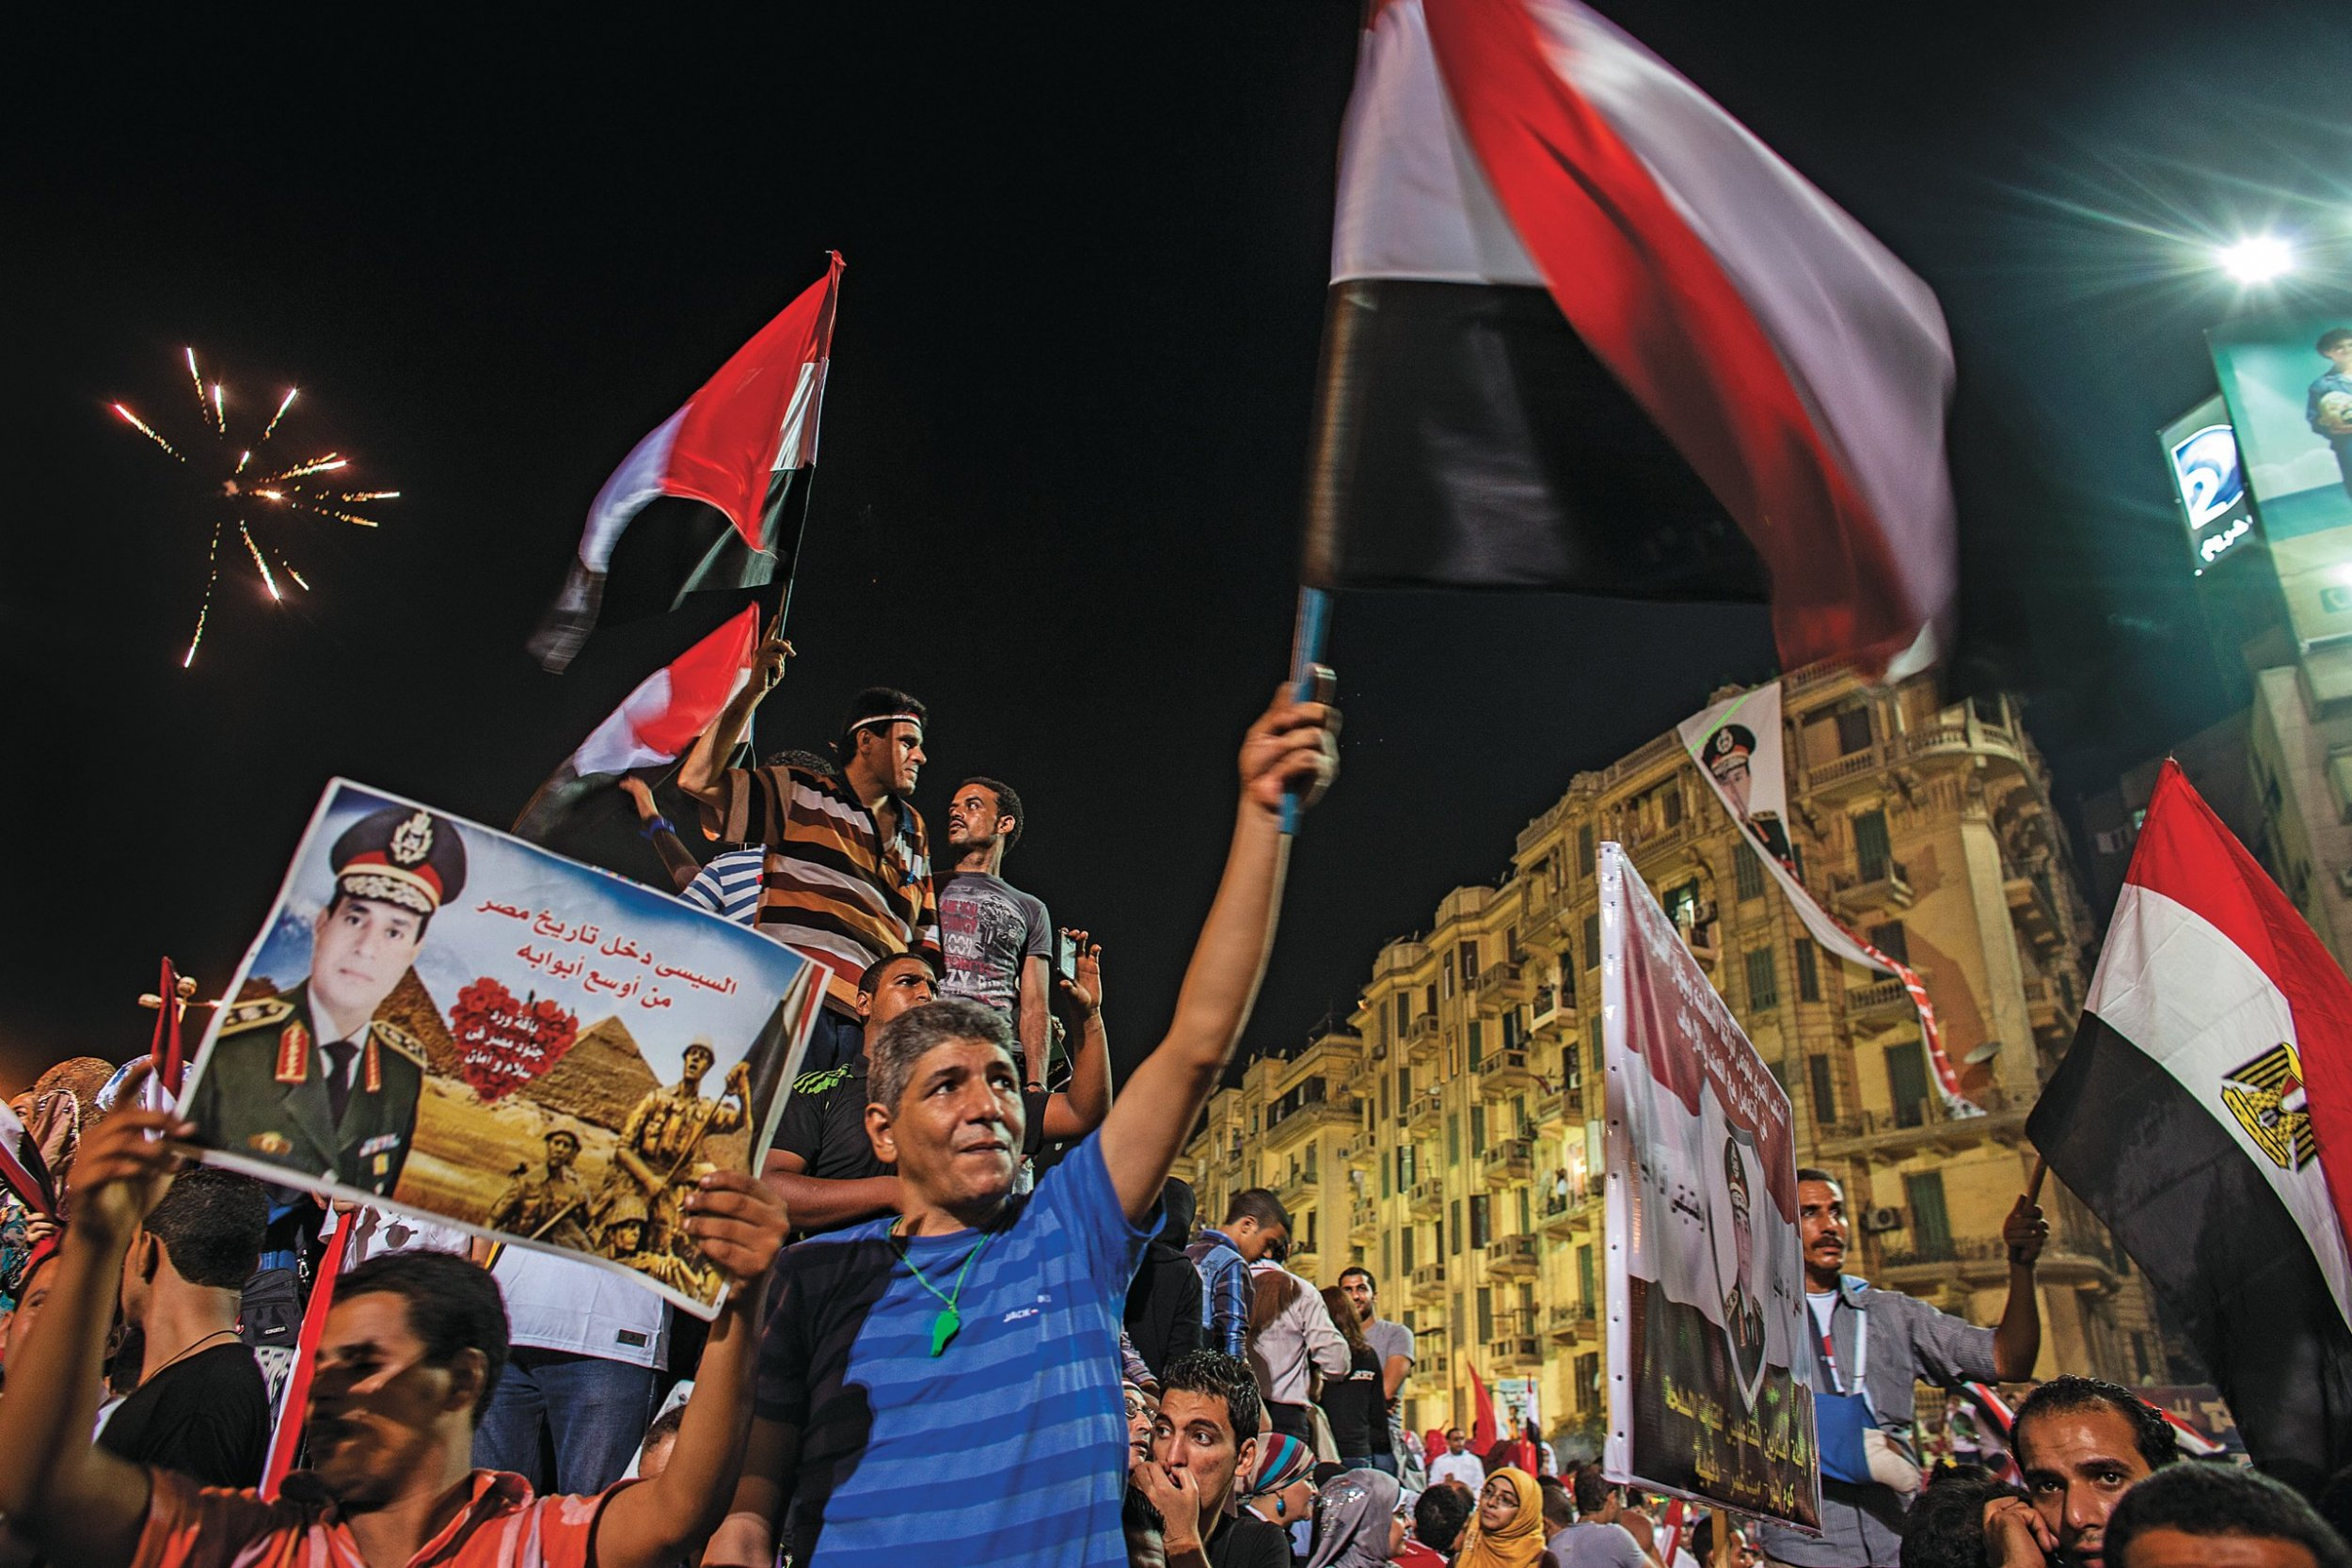 COURAGE!! General El-Sisi, the most popular man in Egypt